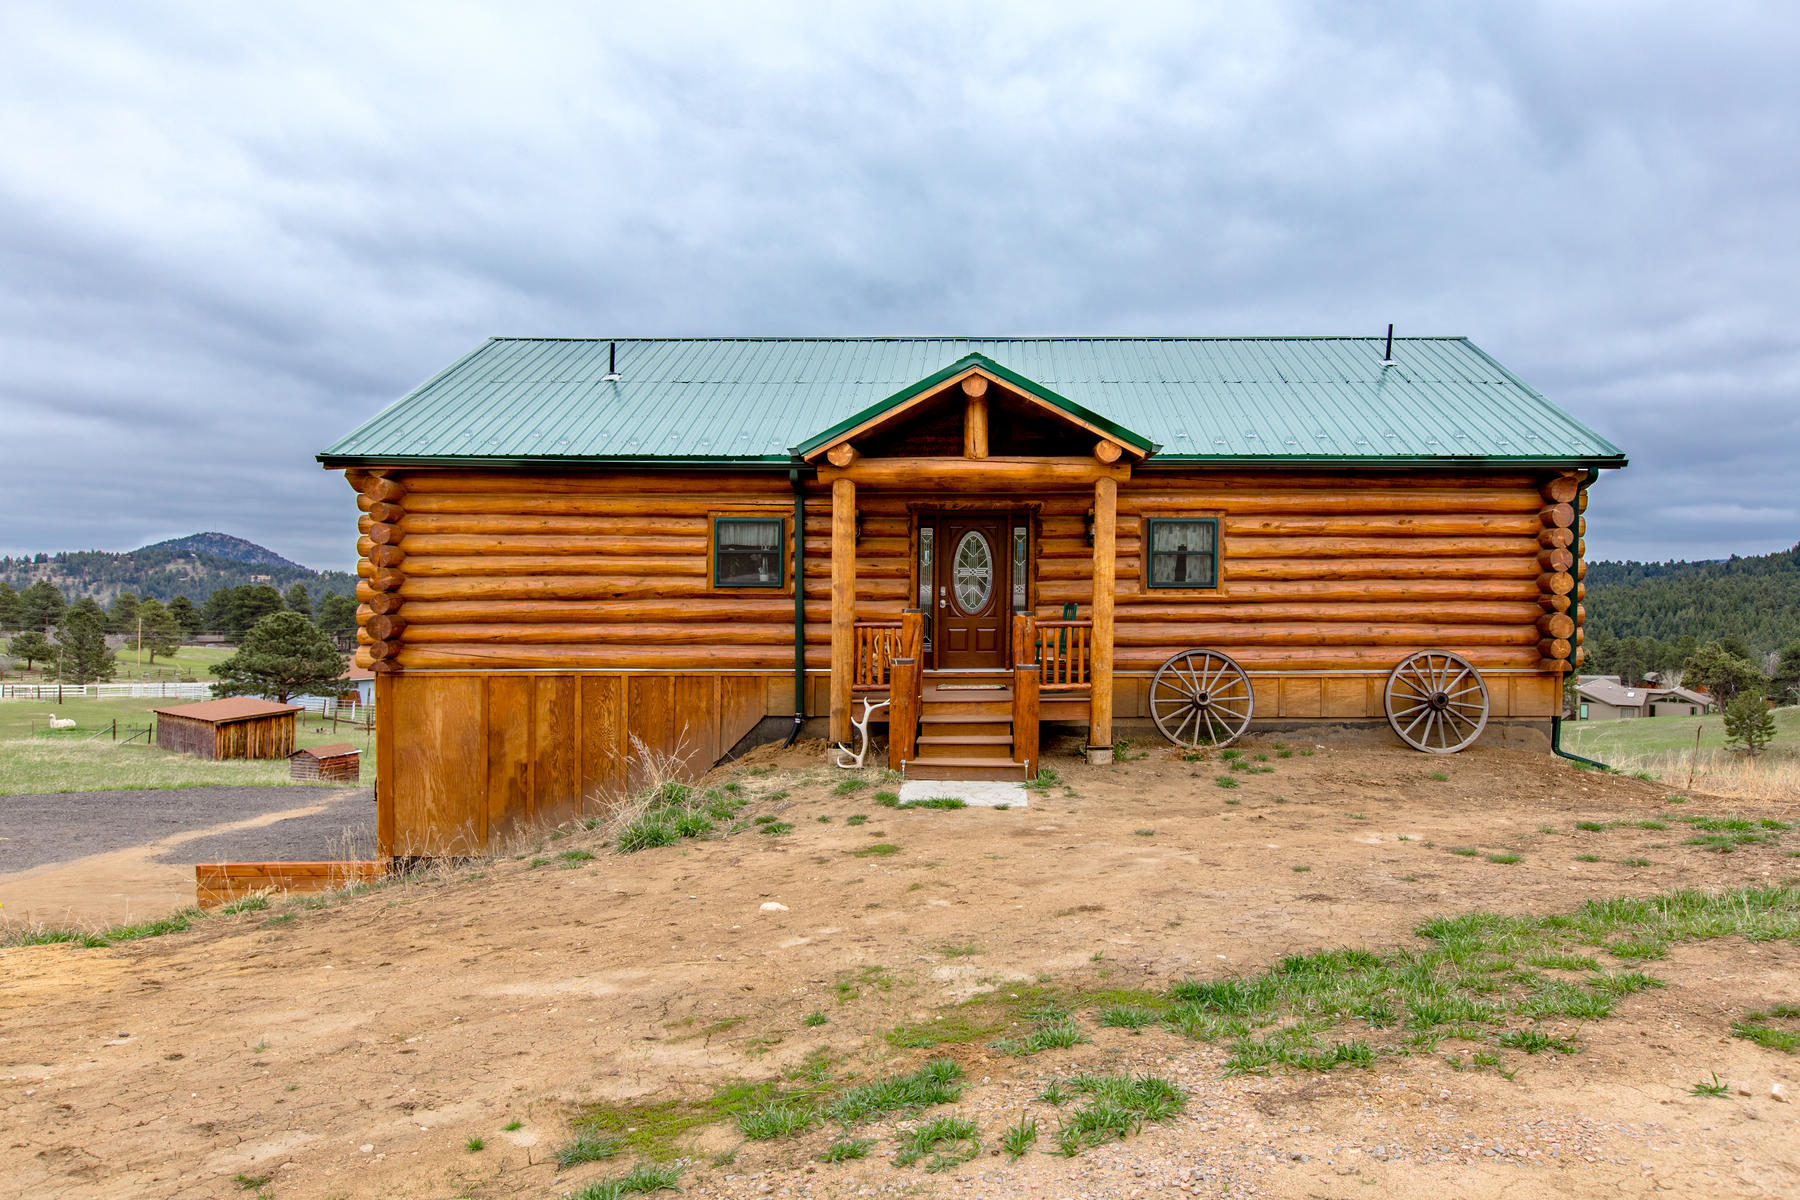 Single Family Homes for Sale at You will love this beautiful custom built log home 6832 Peaceful Hills Rd, Morrison, Colorado 80465 United States